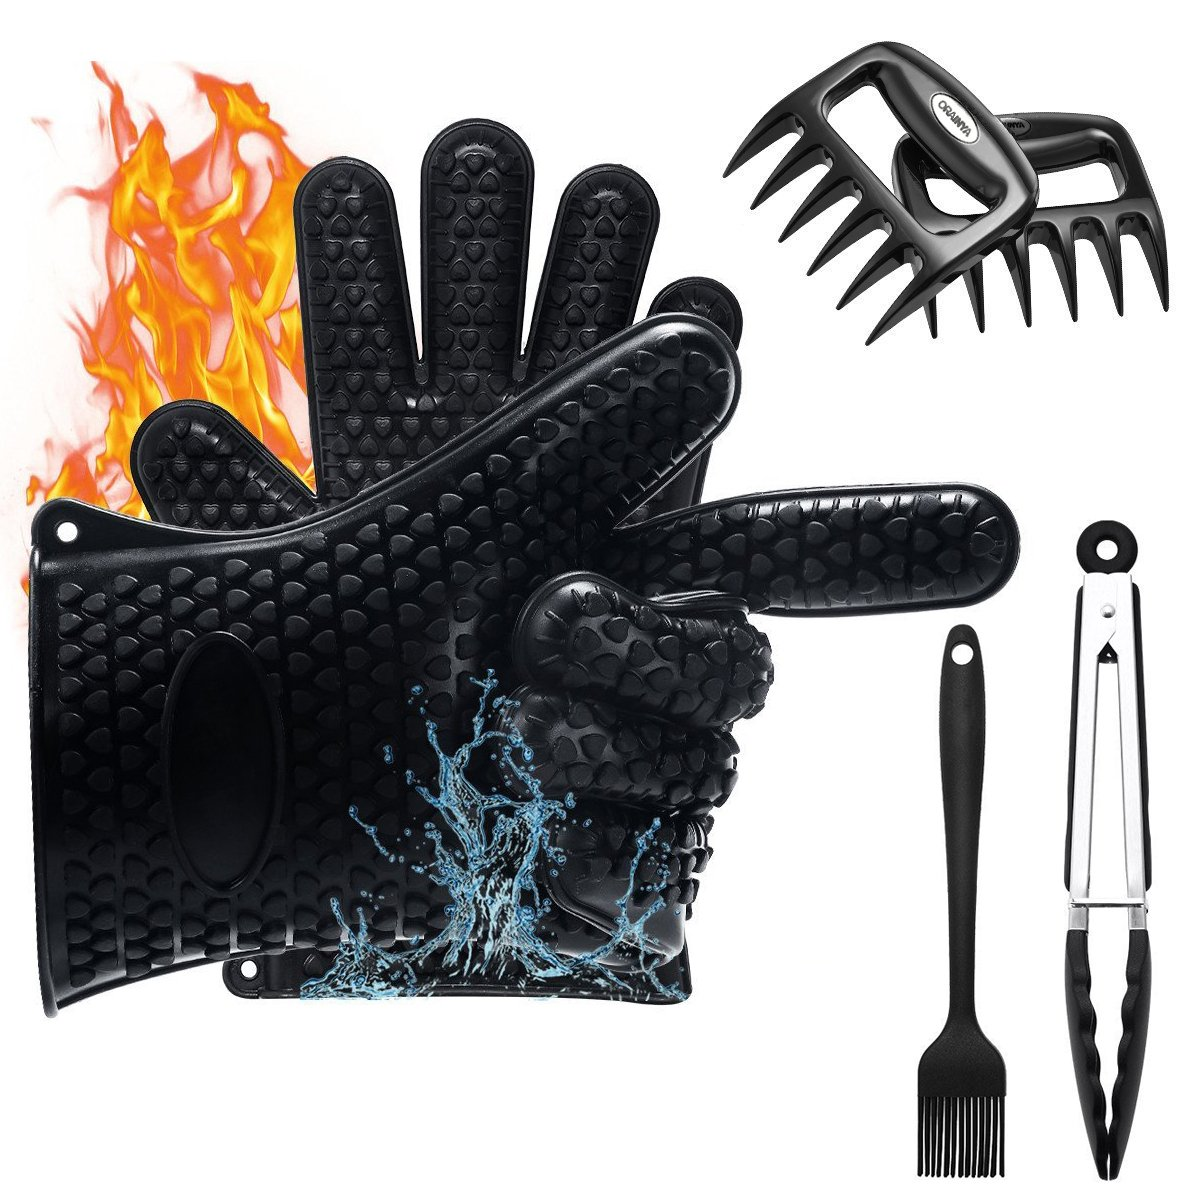 Orainya Silicone BBQ Gloves BBQ Grill Tool Set Meat Claws BBQ Meat Gloves Kitchen Tong BBQ Grill Brush Indoor Outdoor Grilling by Orainya